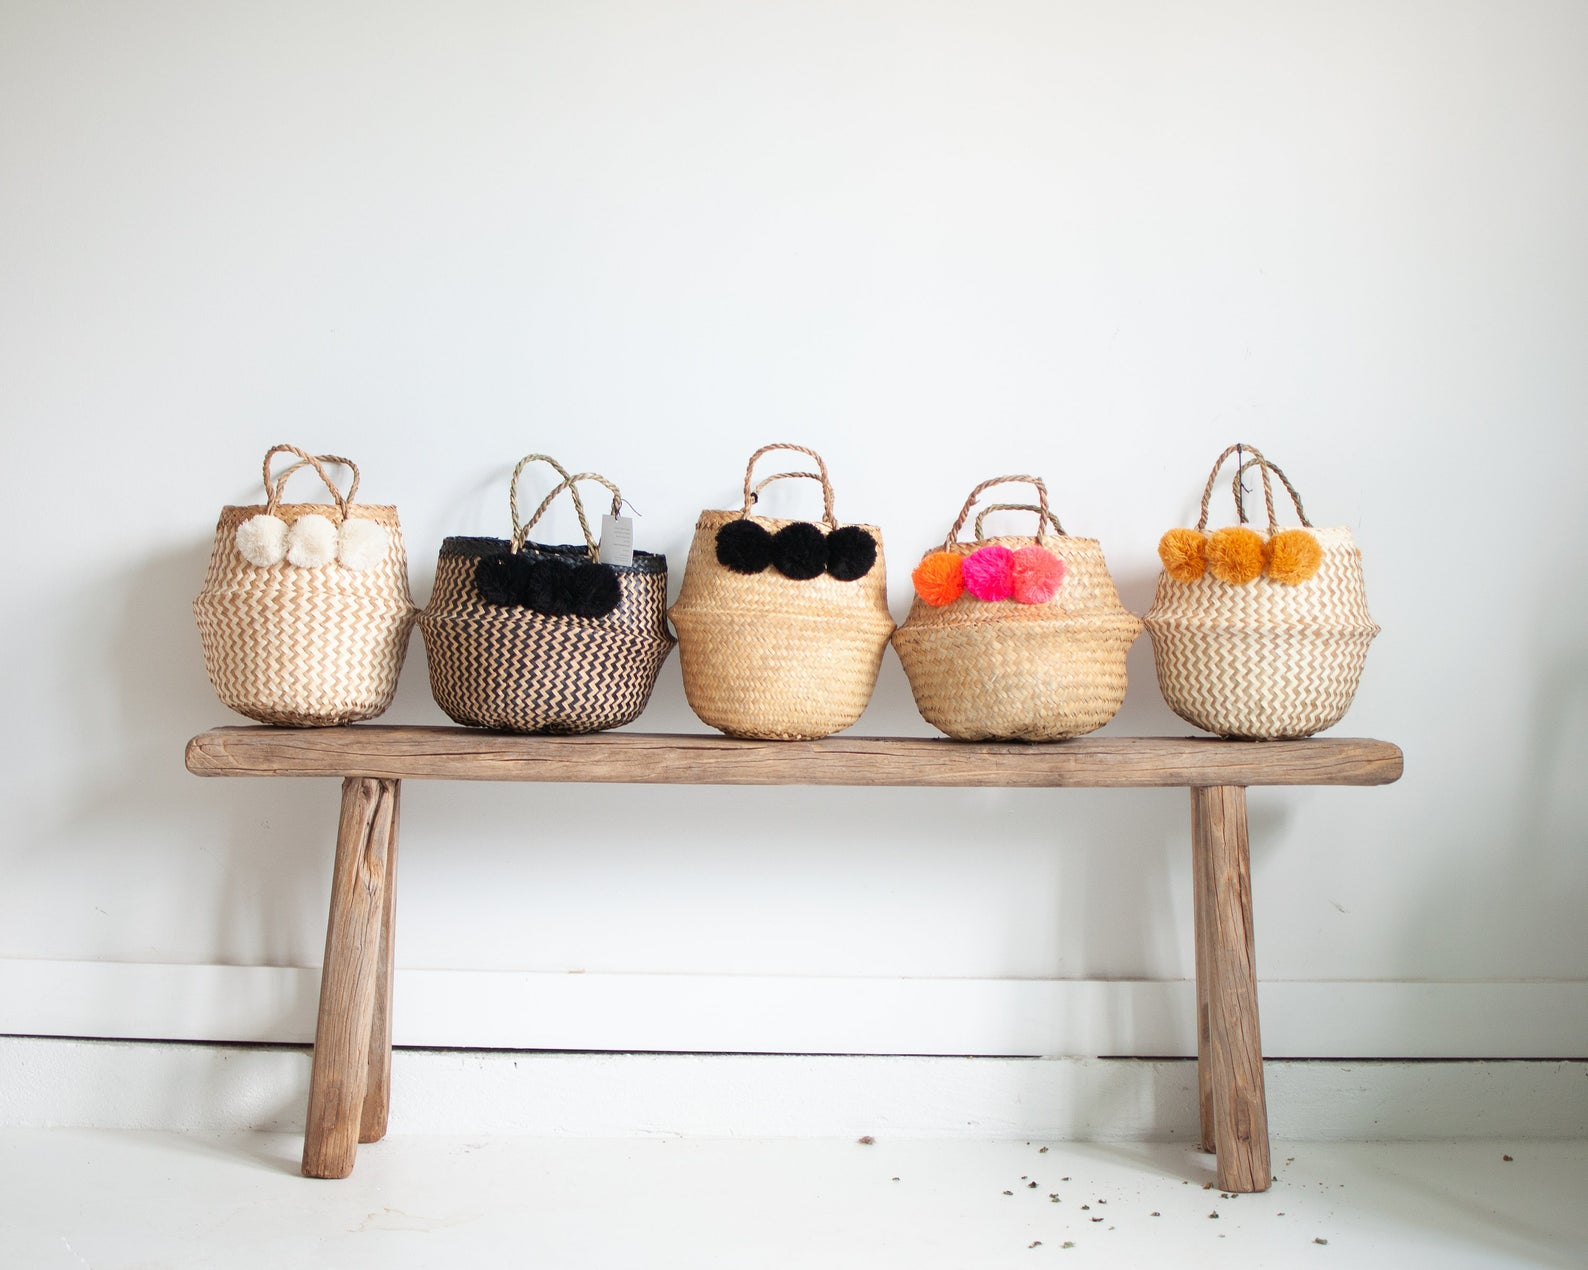 Mini woven baskets with pom poms